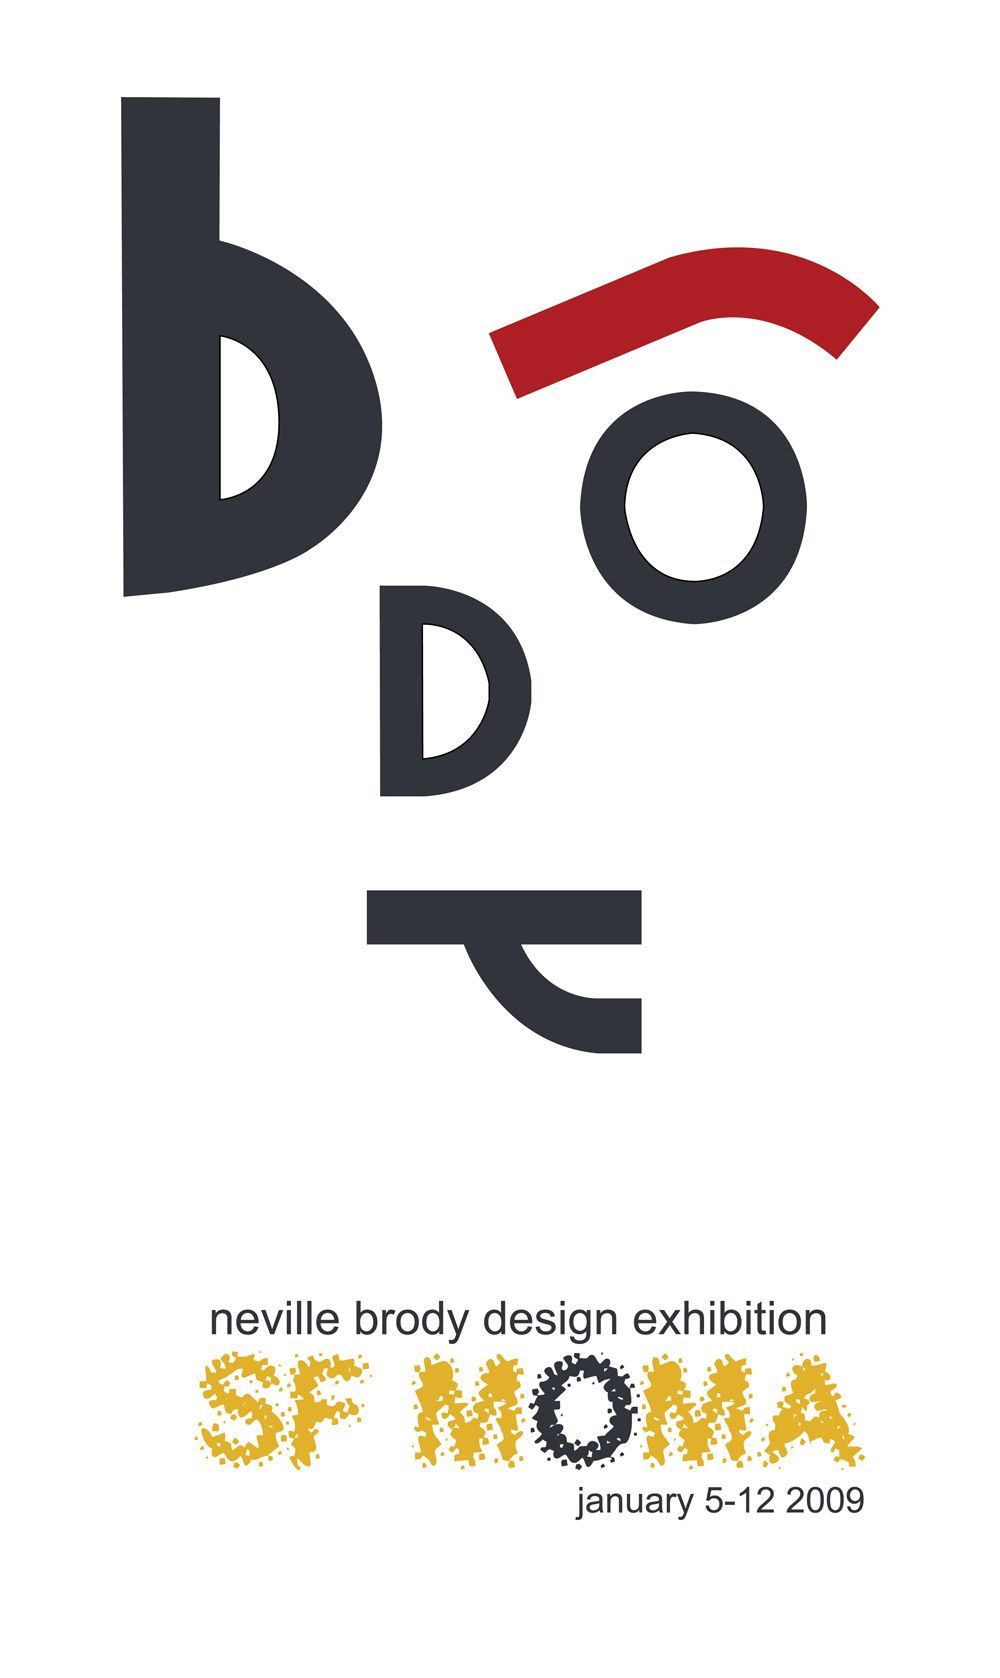 neville brody posters - Google Search